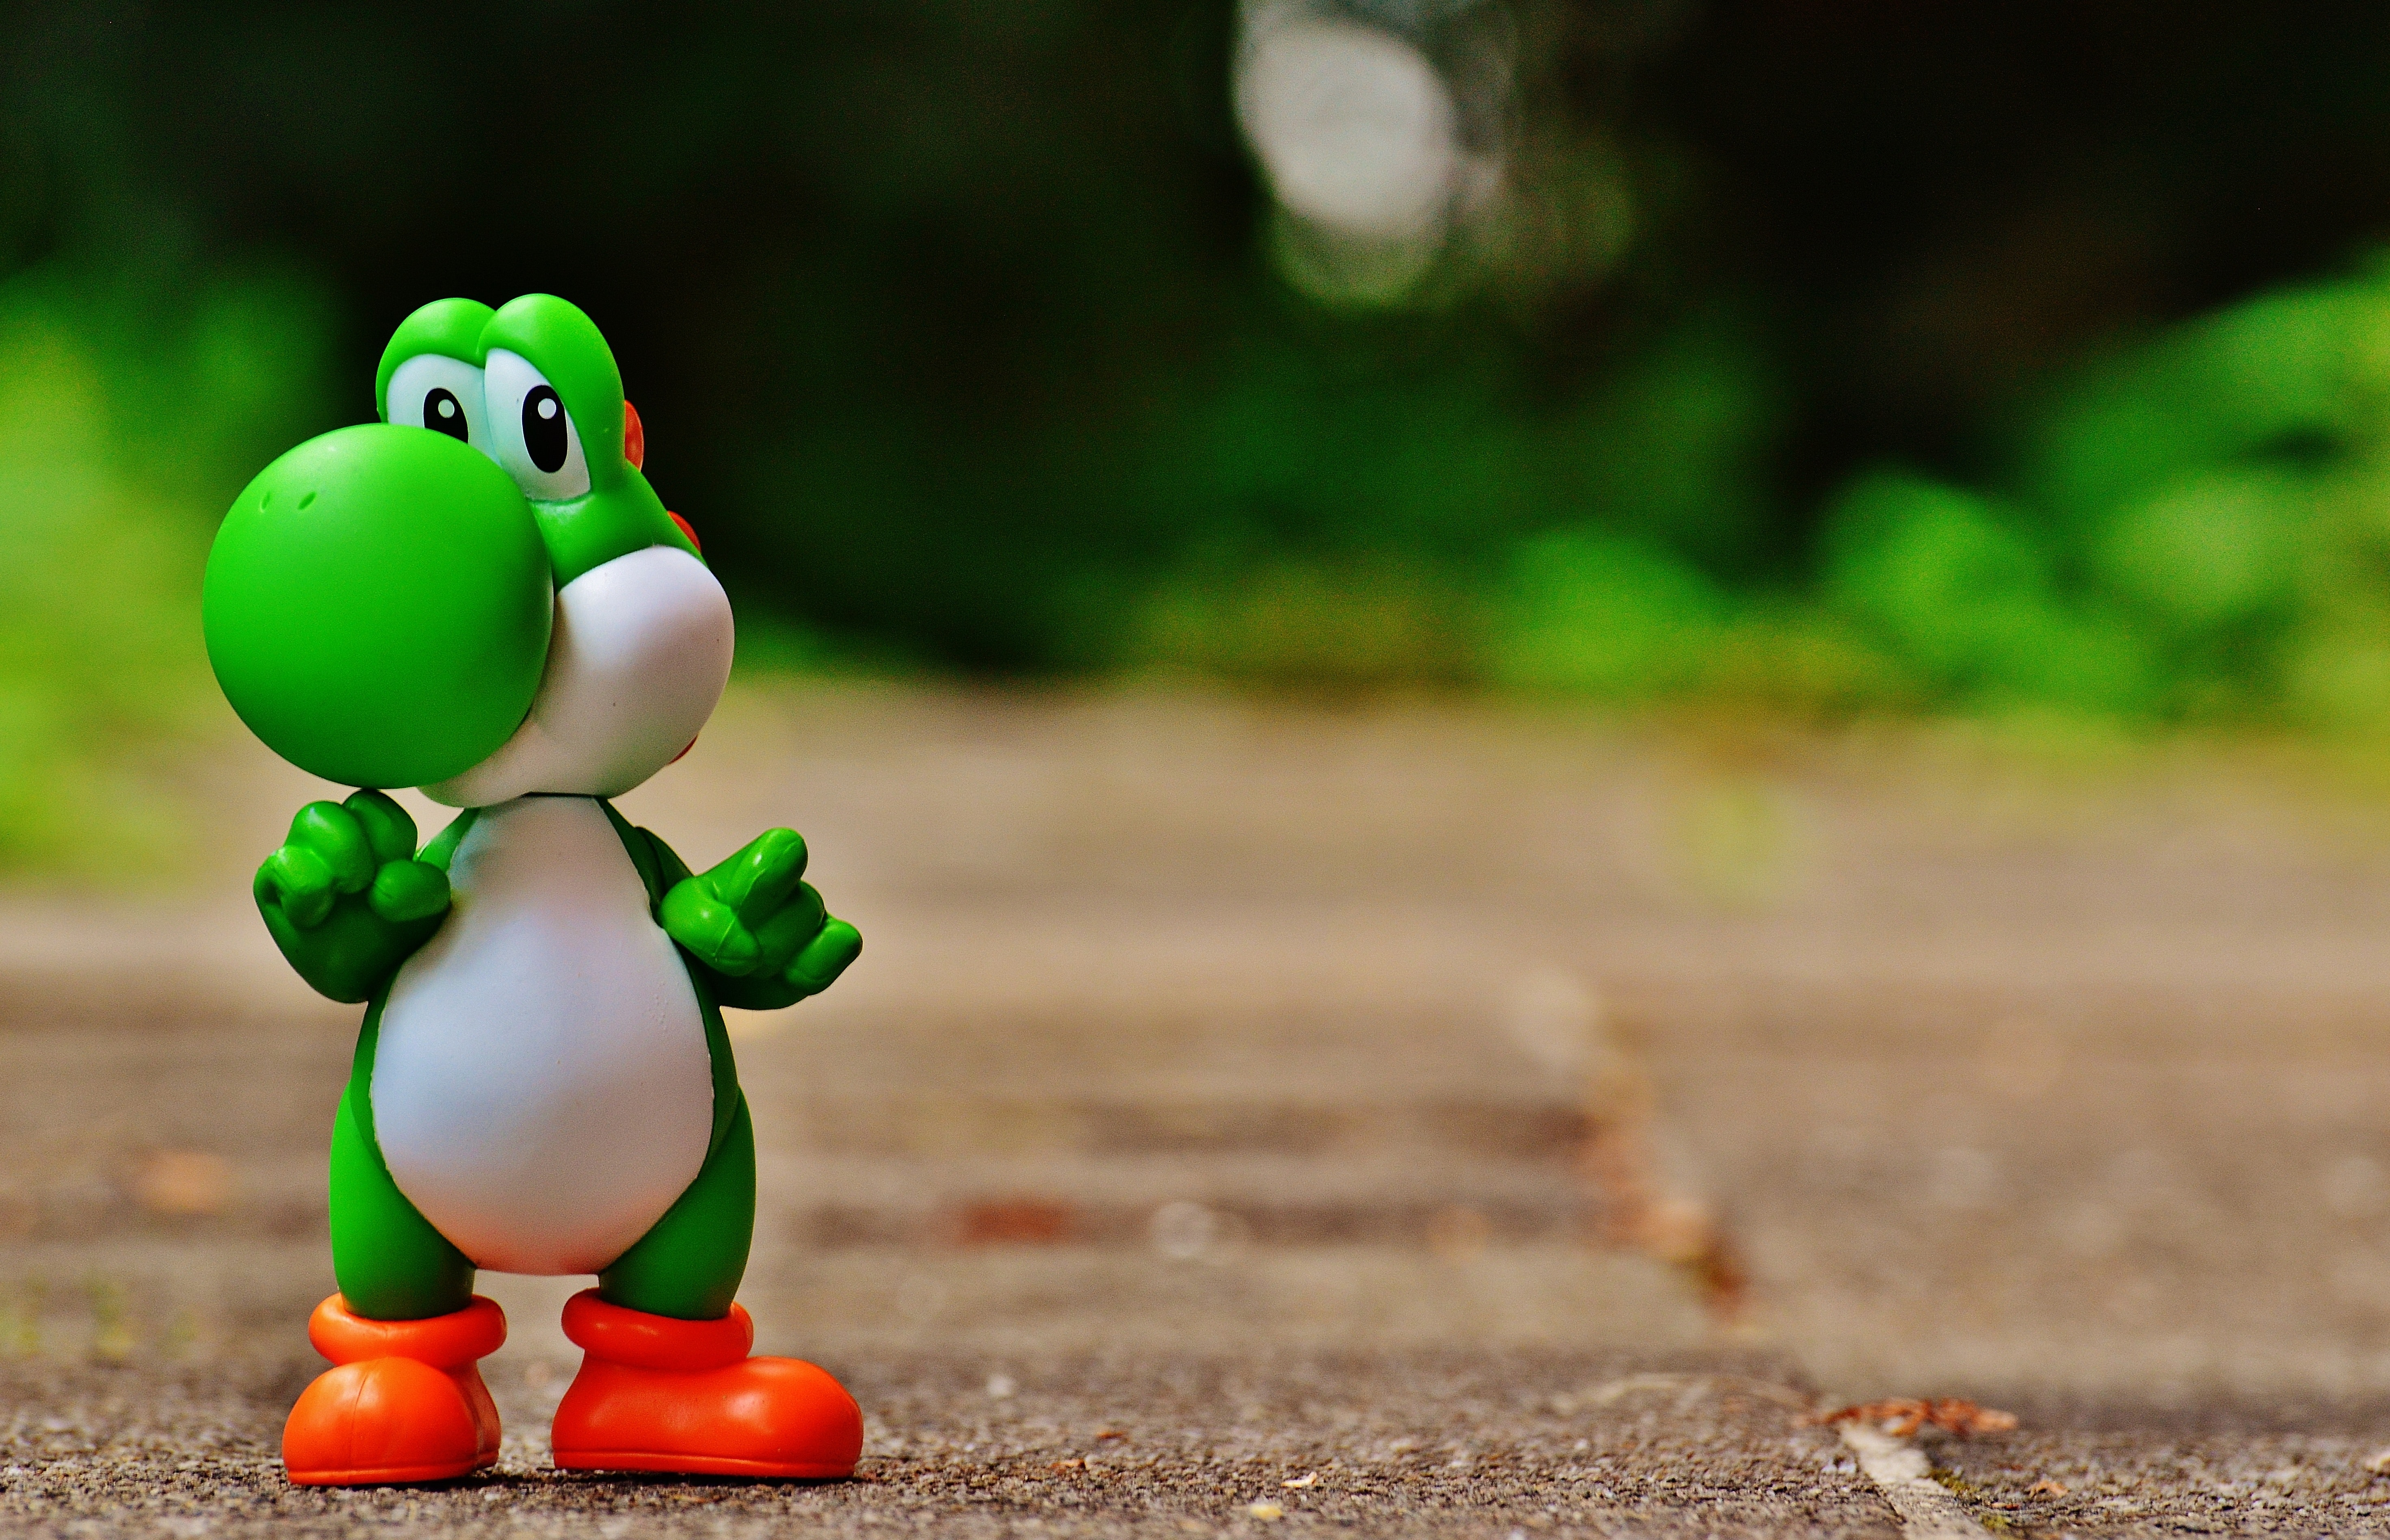 Green and White Dinosaur Toy on Brown Ground in Tilt Shift Photography, Blur, Character, Child, Color, HQ Photo